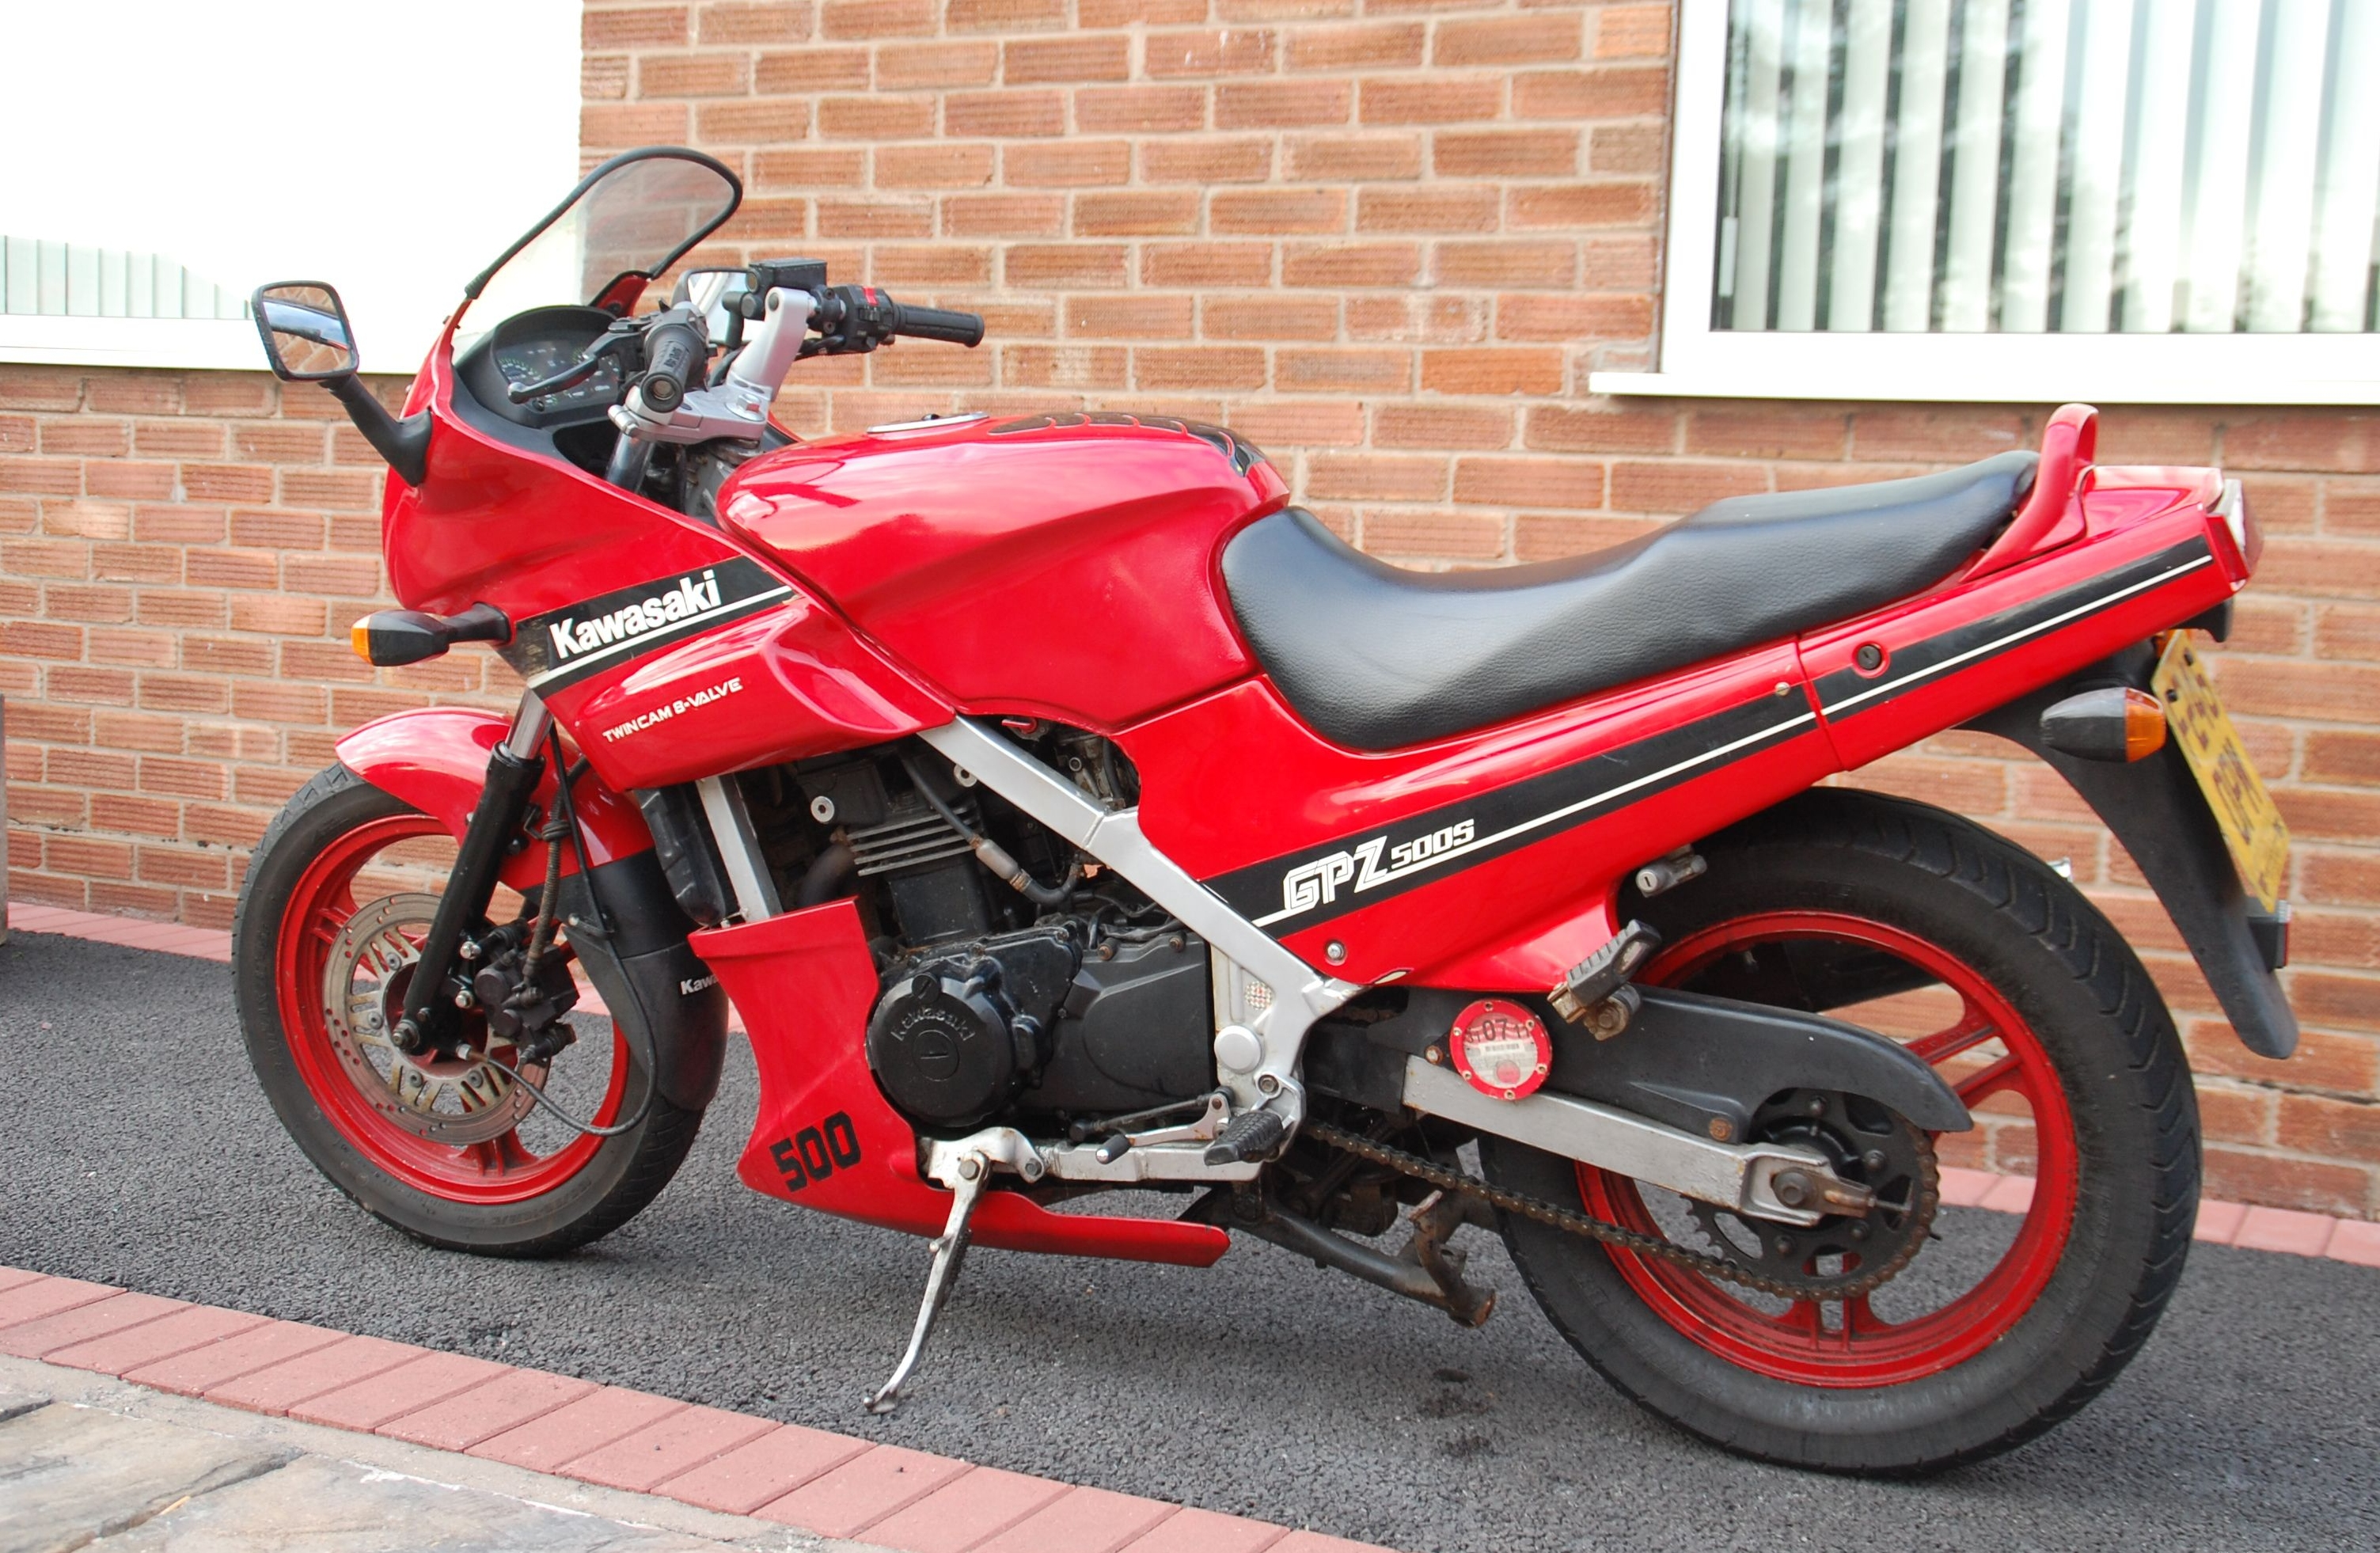 Kawasaki GPZ 500 S (reduced effect) 1993 pics #31871